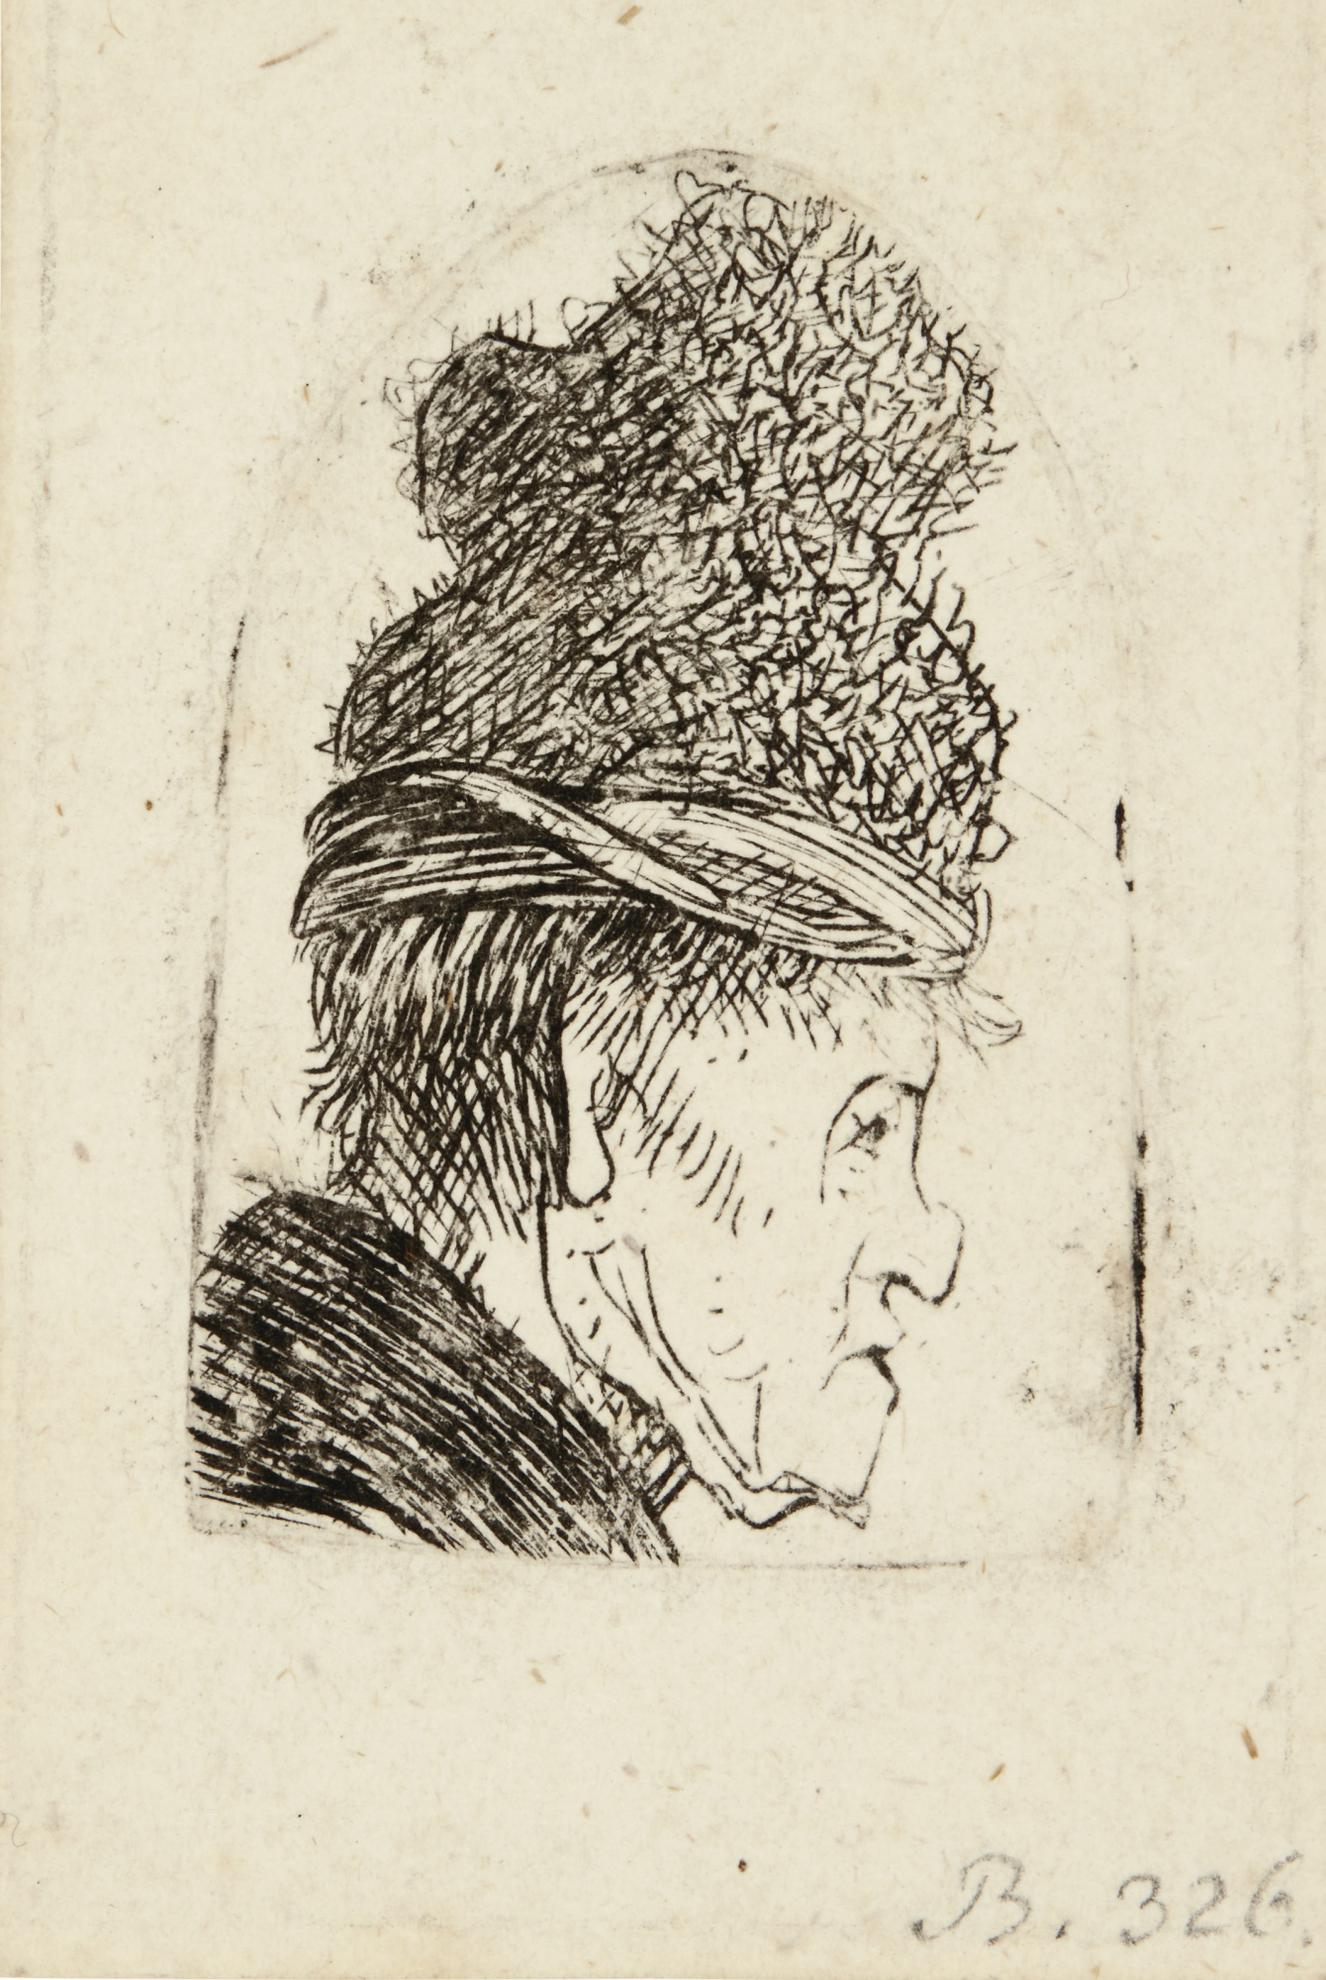 Rembrandt van Rijn-Grotesque Profile: Man In A High Cap (B., Holl. 326; New Holl. 35; H. 68)-1631